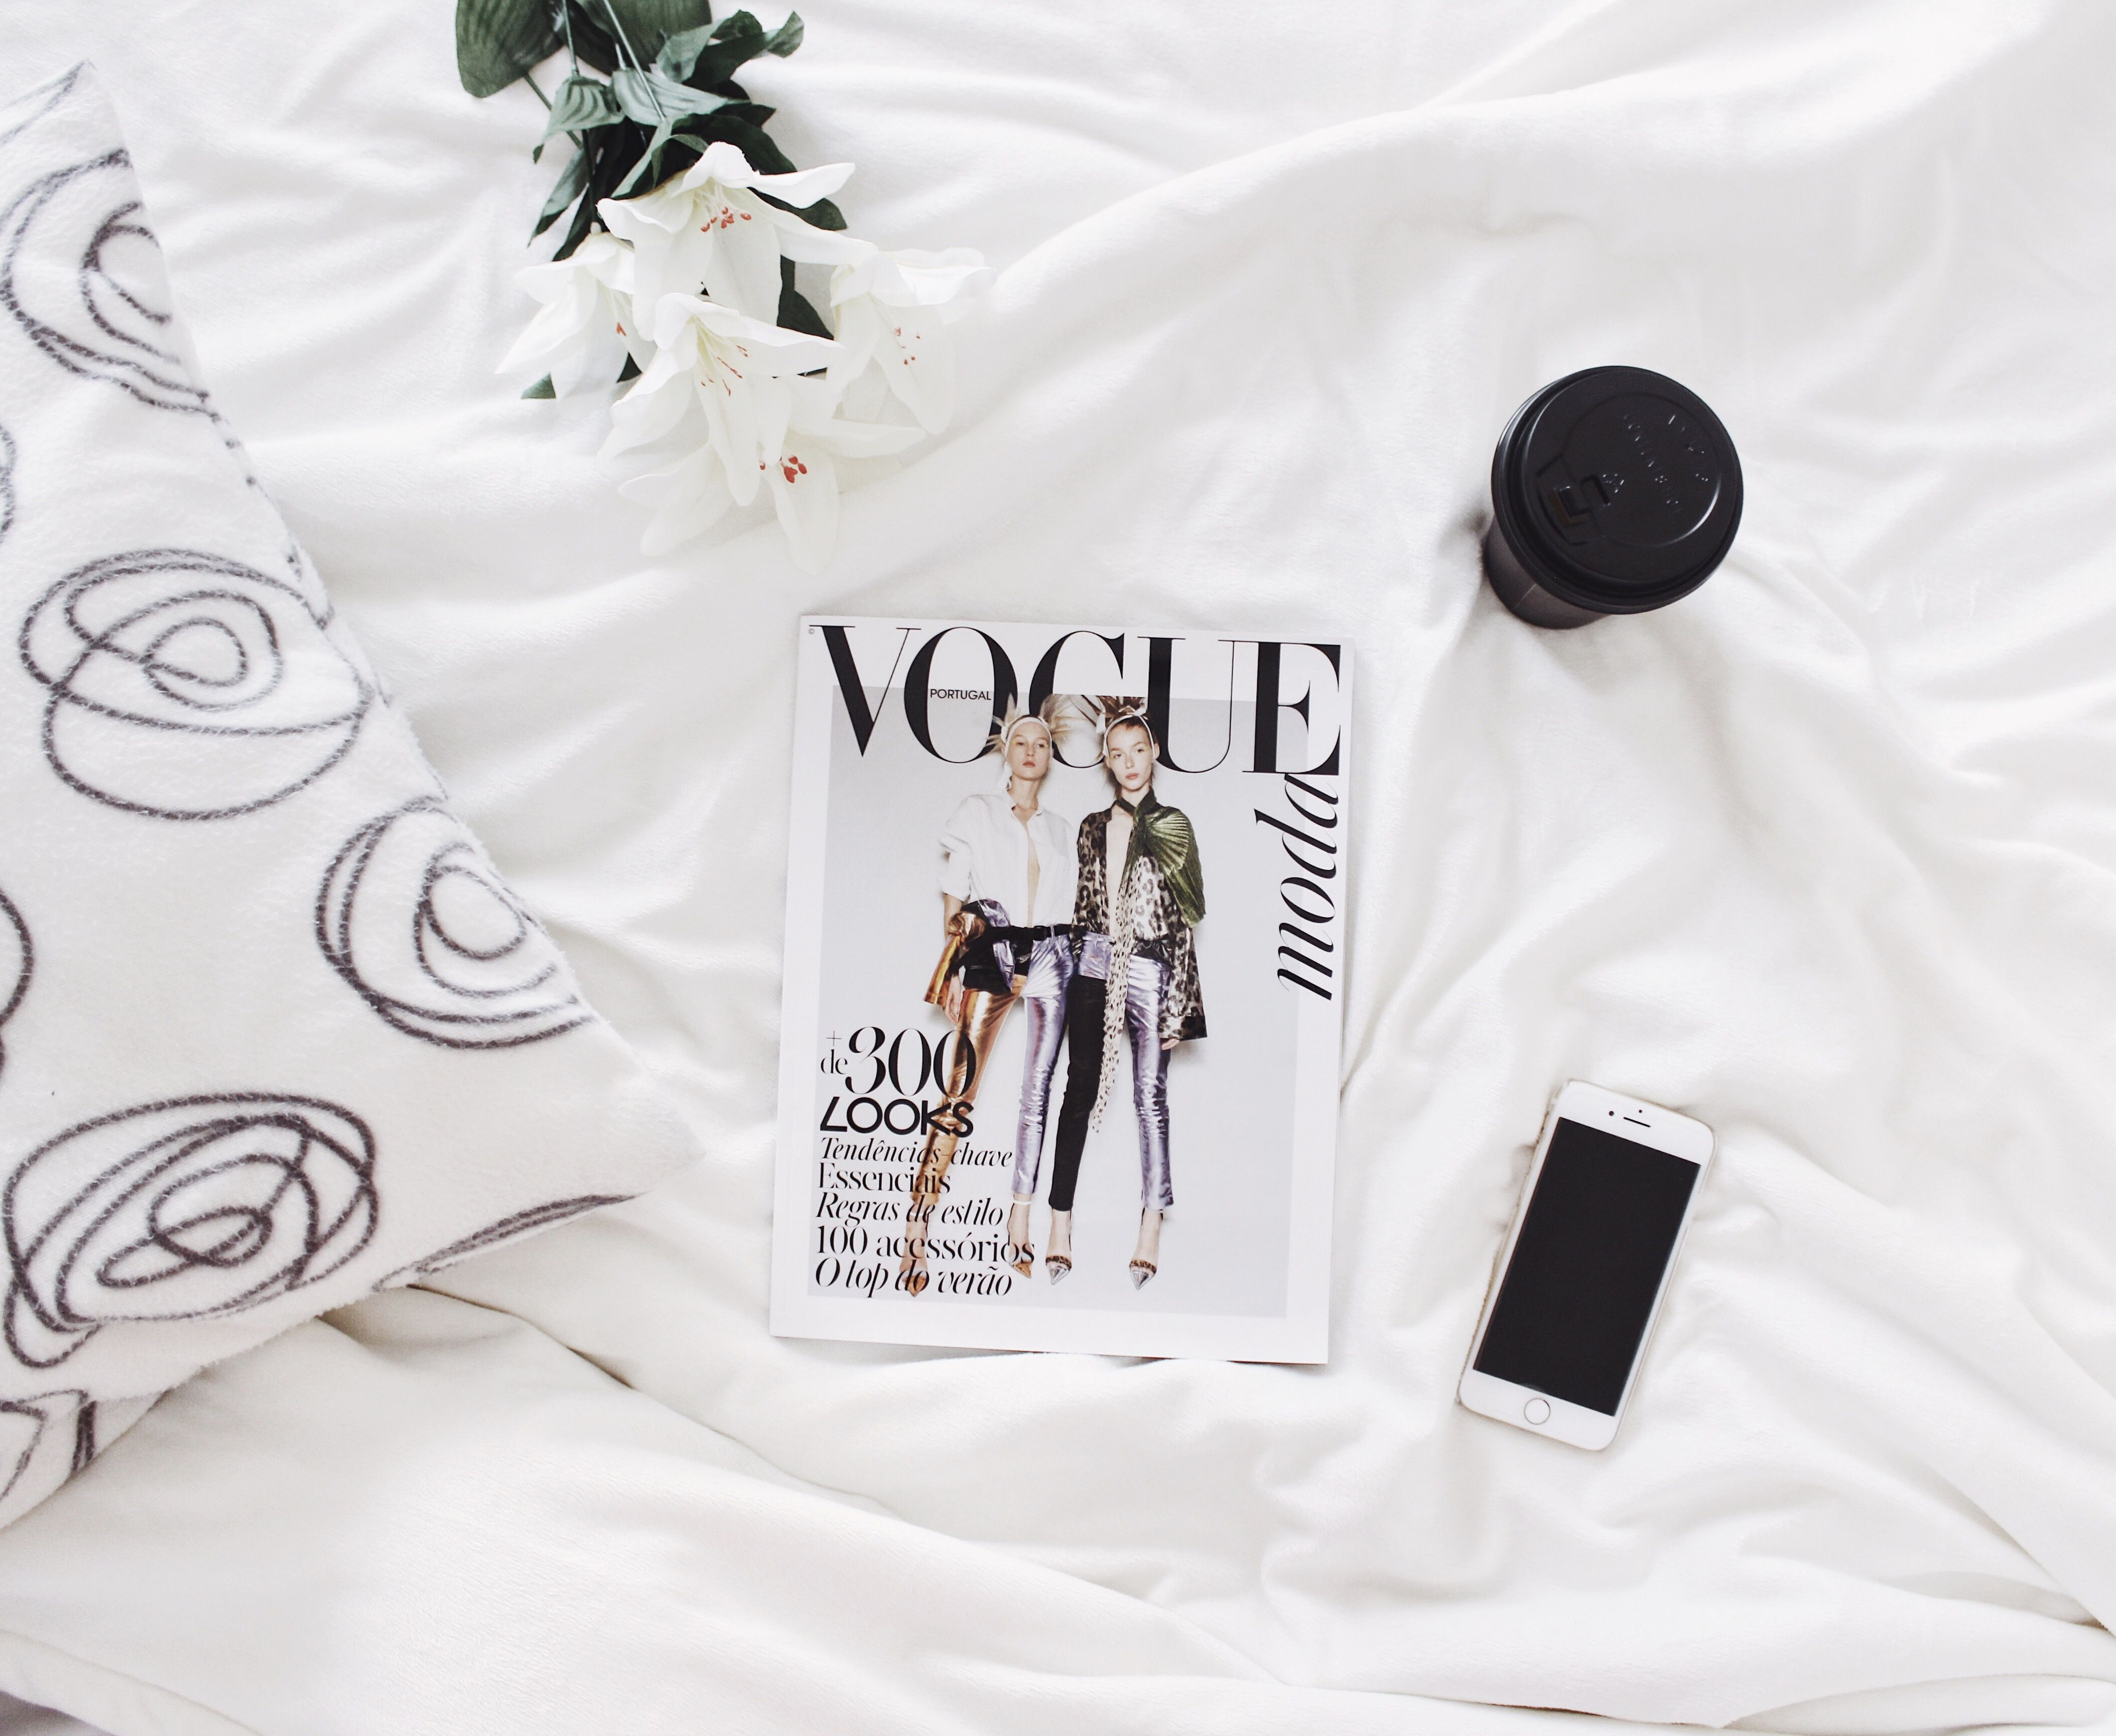 flatlays vogue style magazine flatlaystyle white decor home - Vogue Decor Magazine